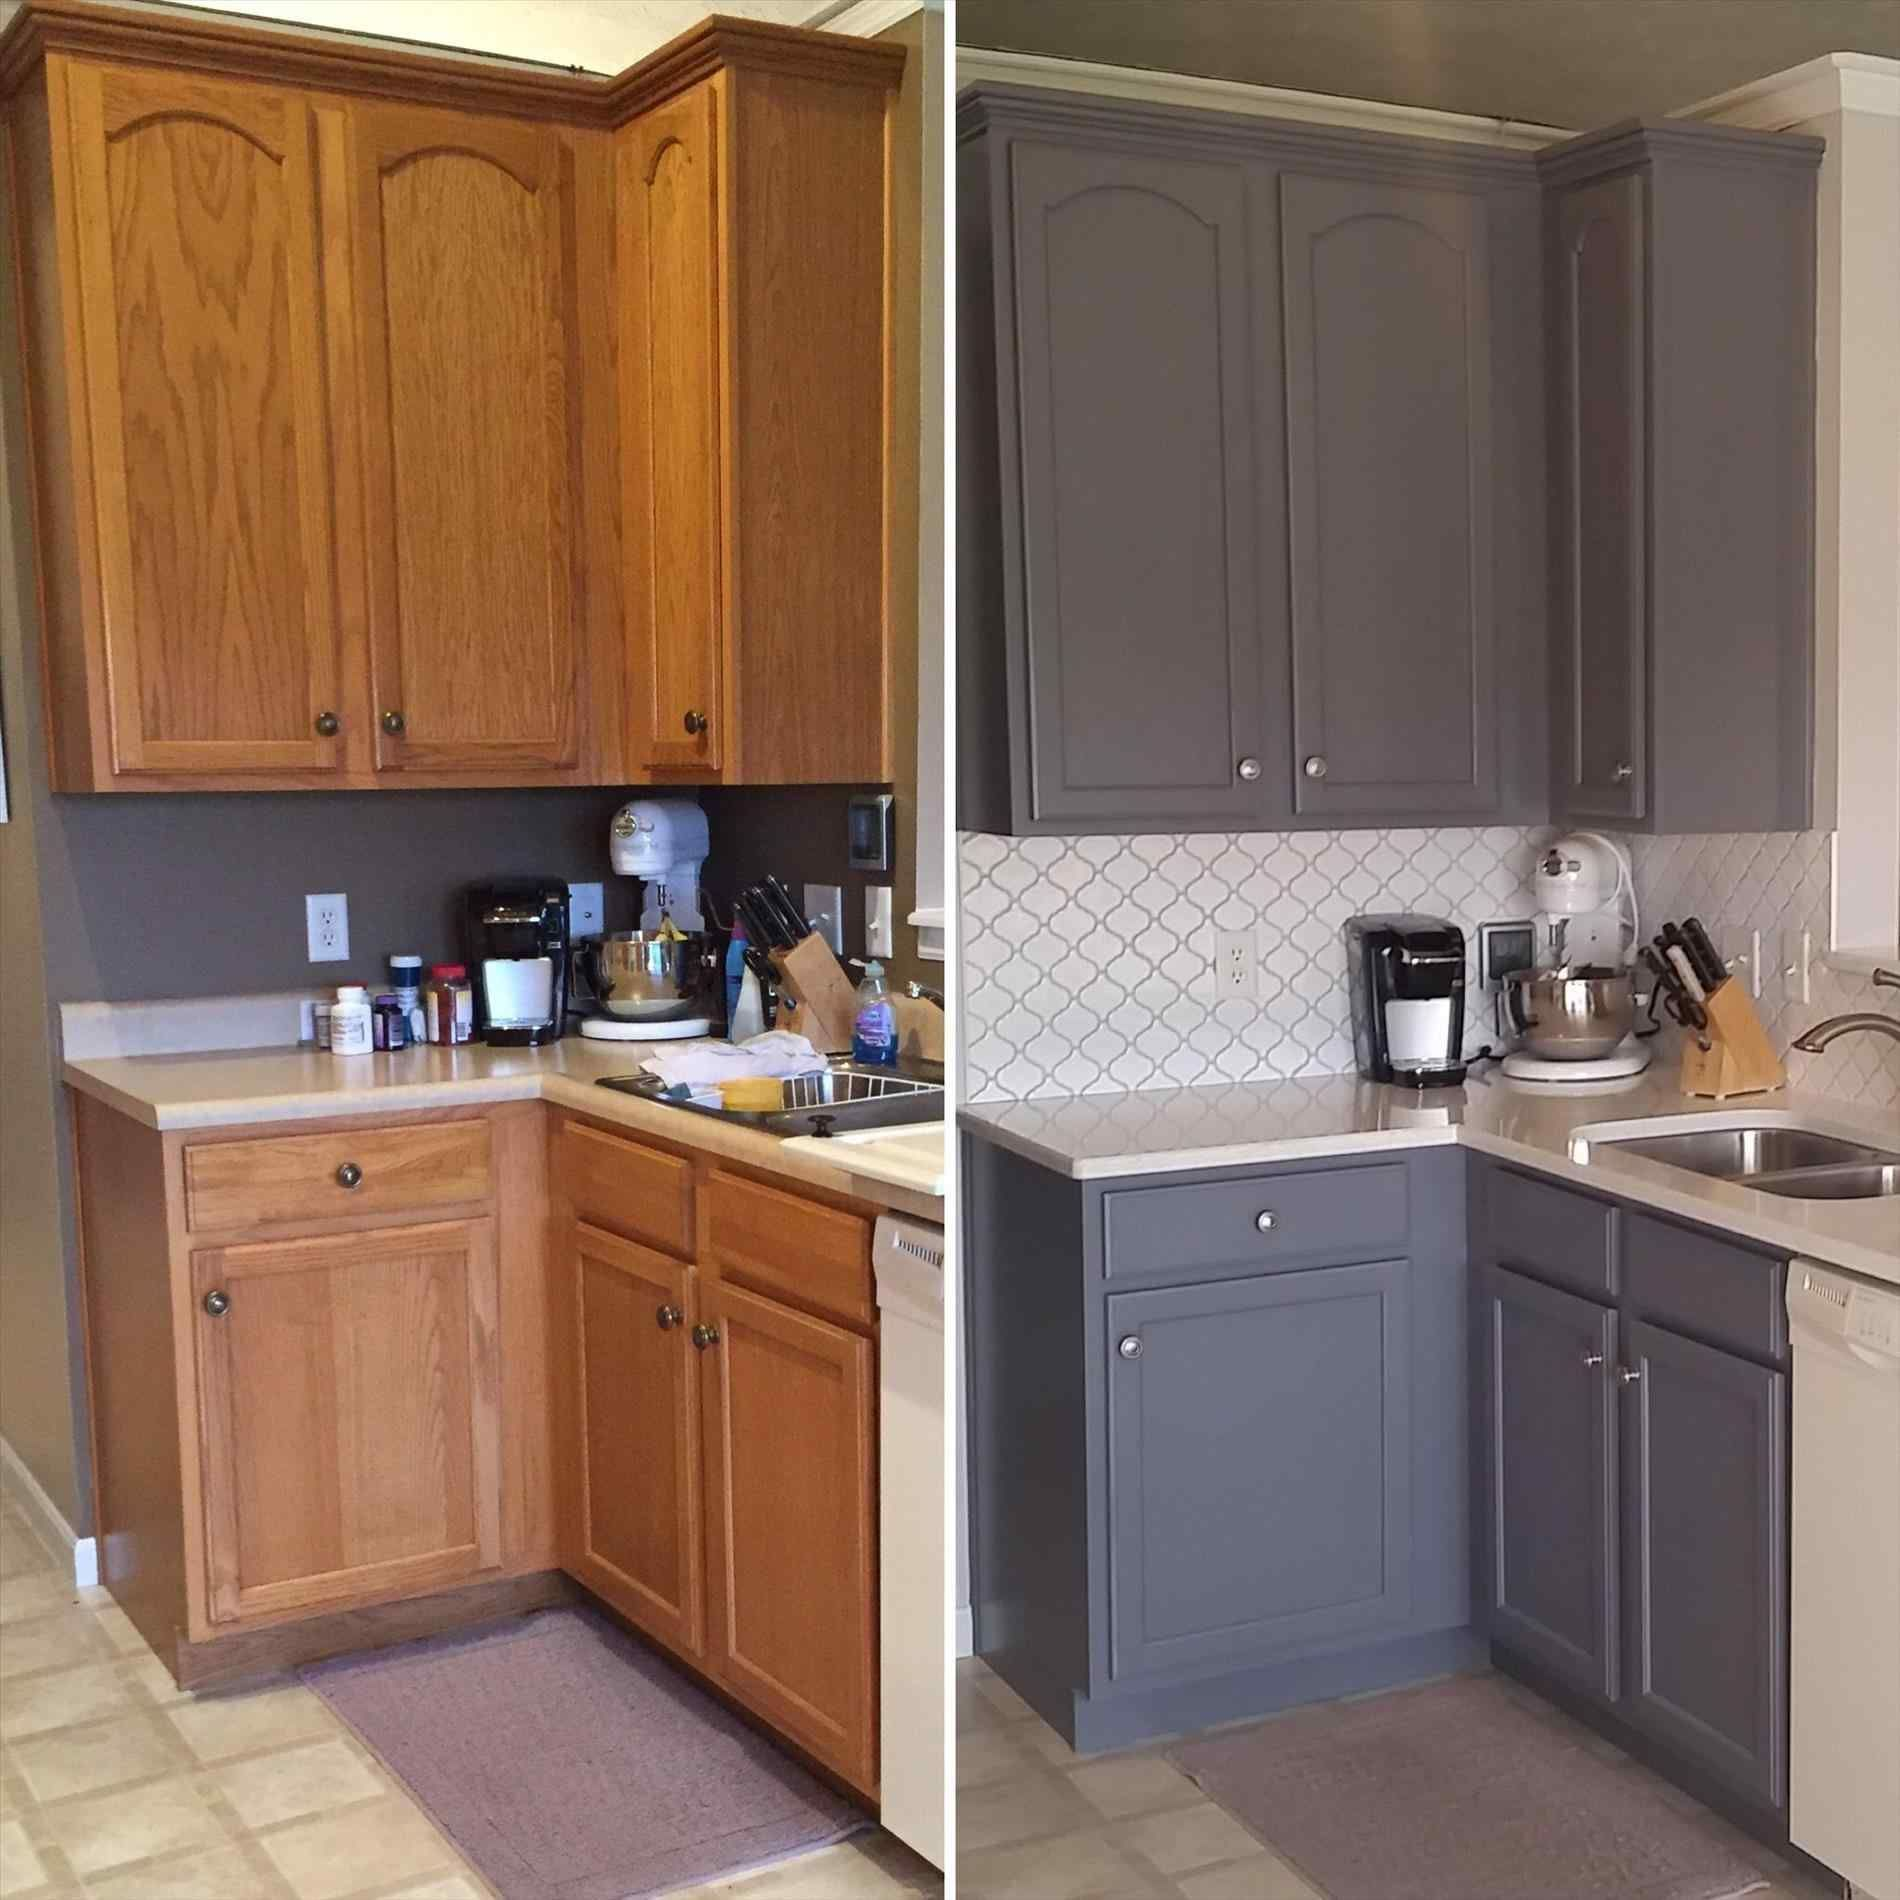 kitchen cabinet before and after of painted kitchen cabinets before and after old kitchen on kitchen cabinets painted before and after id=68447